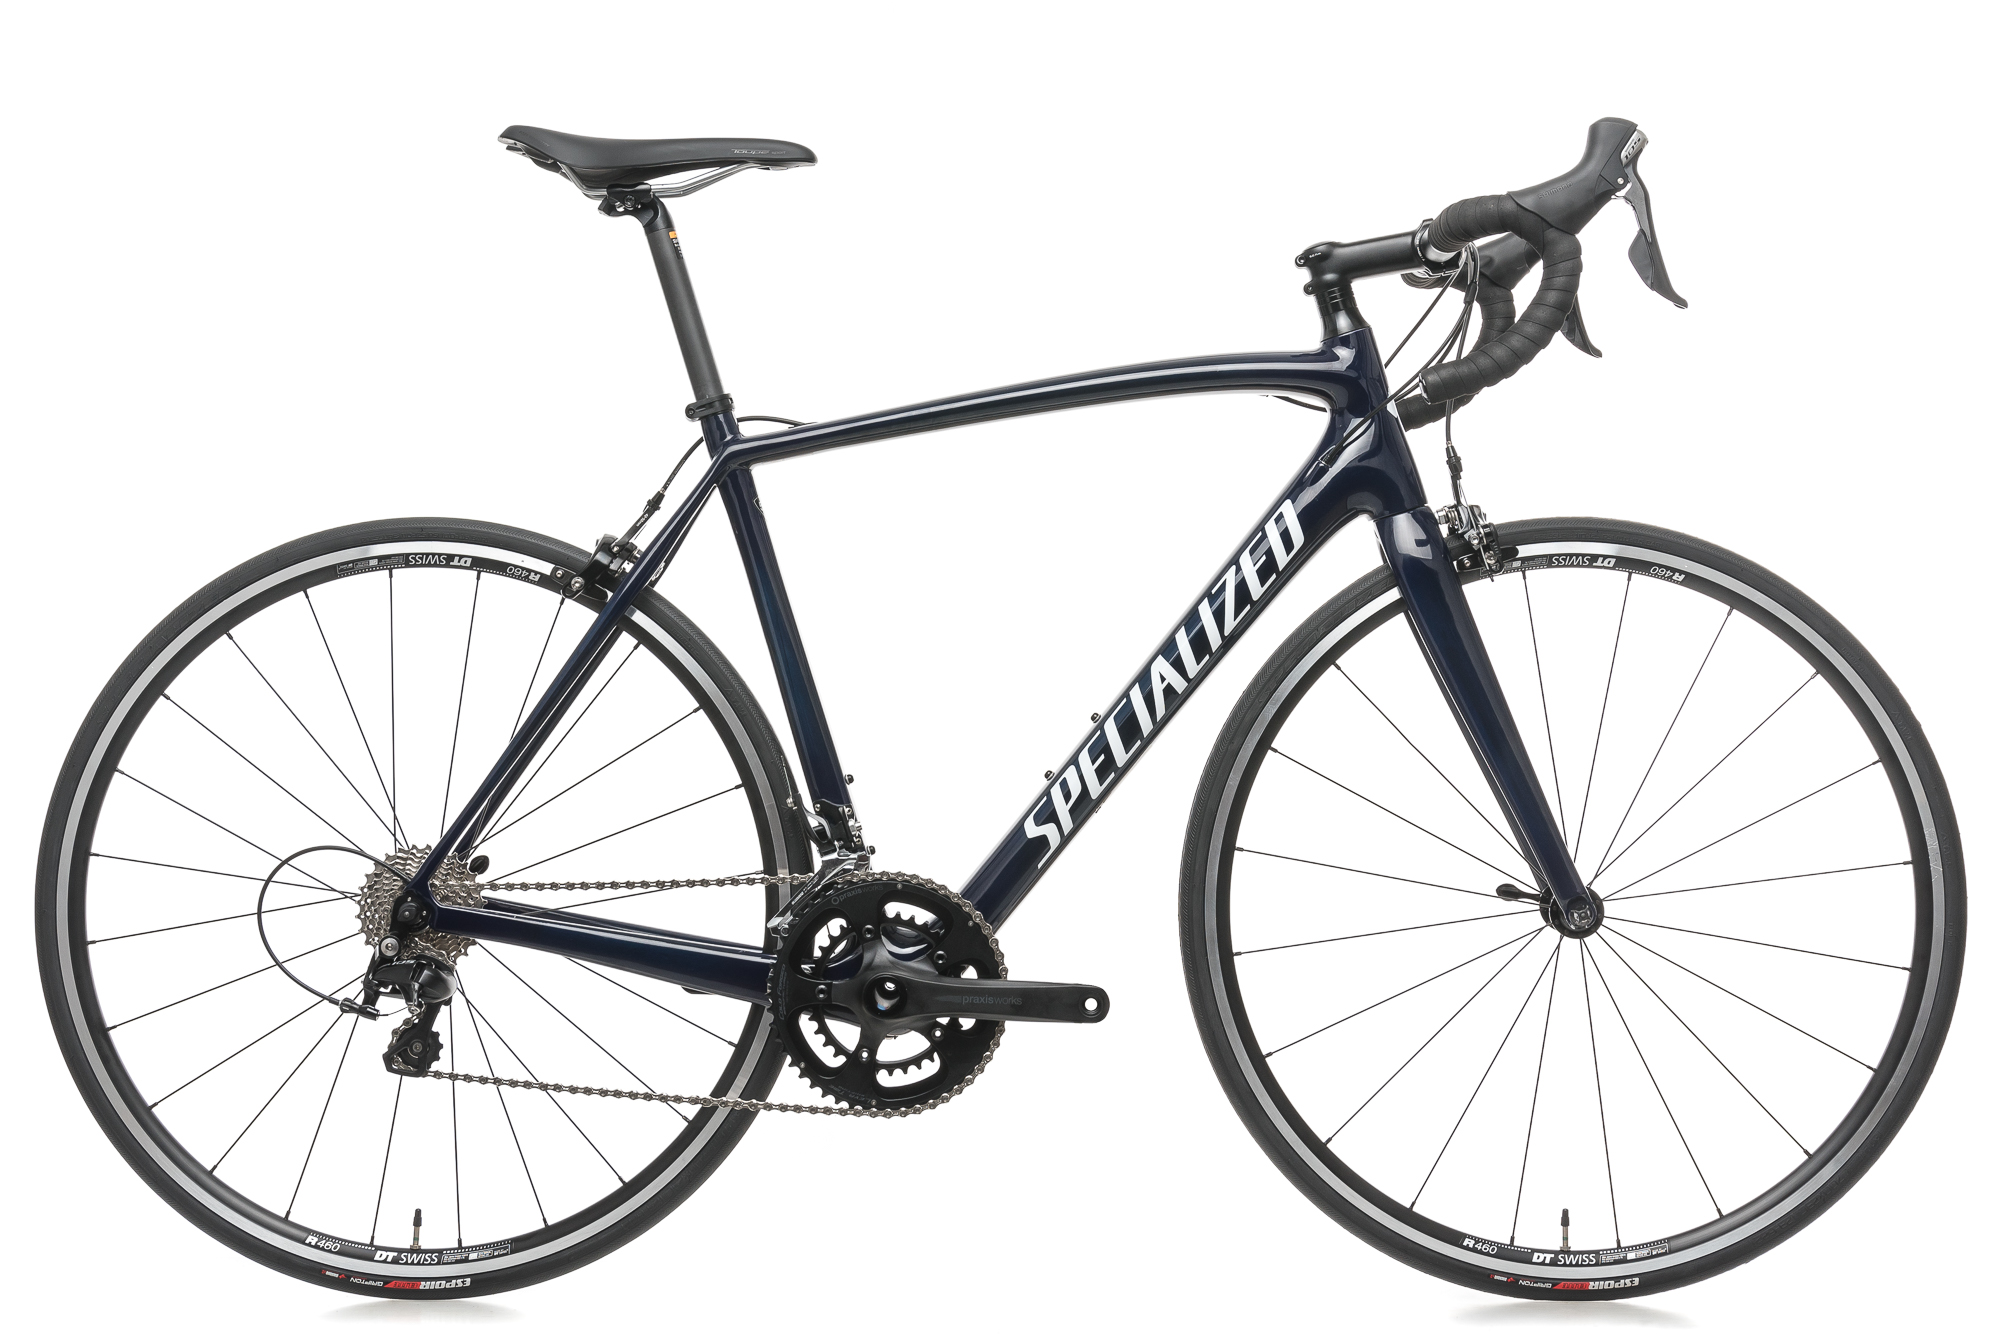 2018 Specialized Tarmac Sport Road Bike 56cm Large Carbon Shimano 105 11 Speed